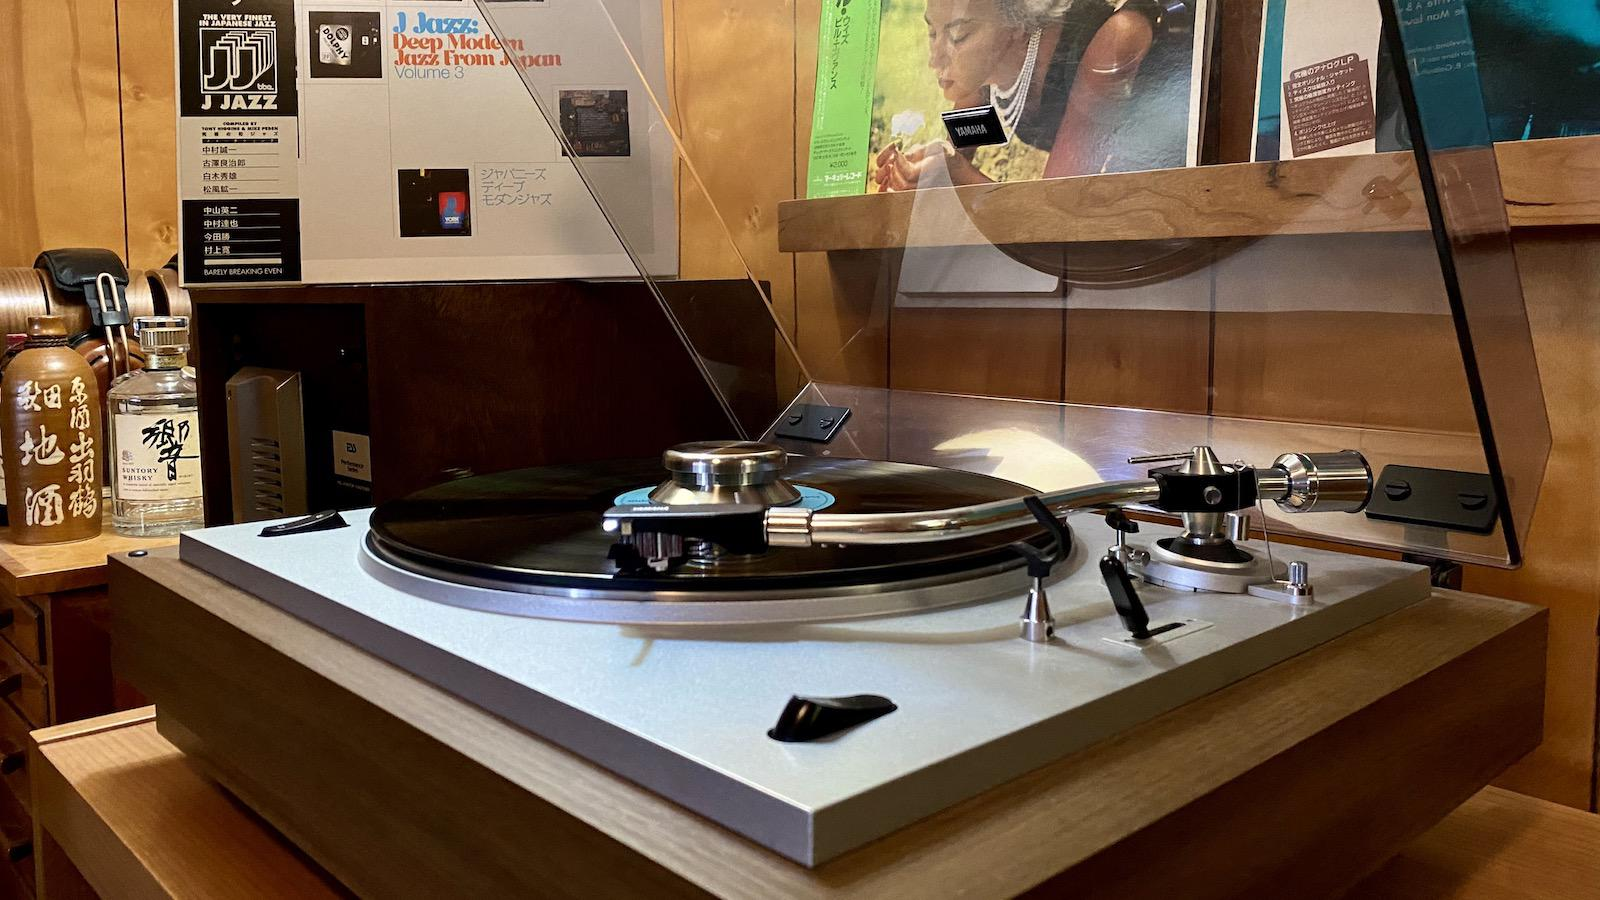 J Jazz on record player